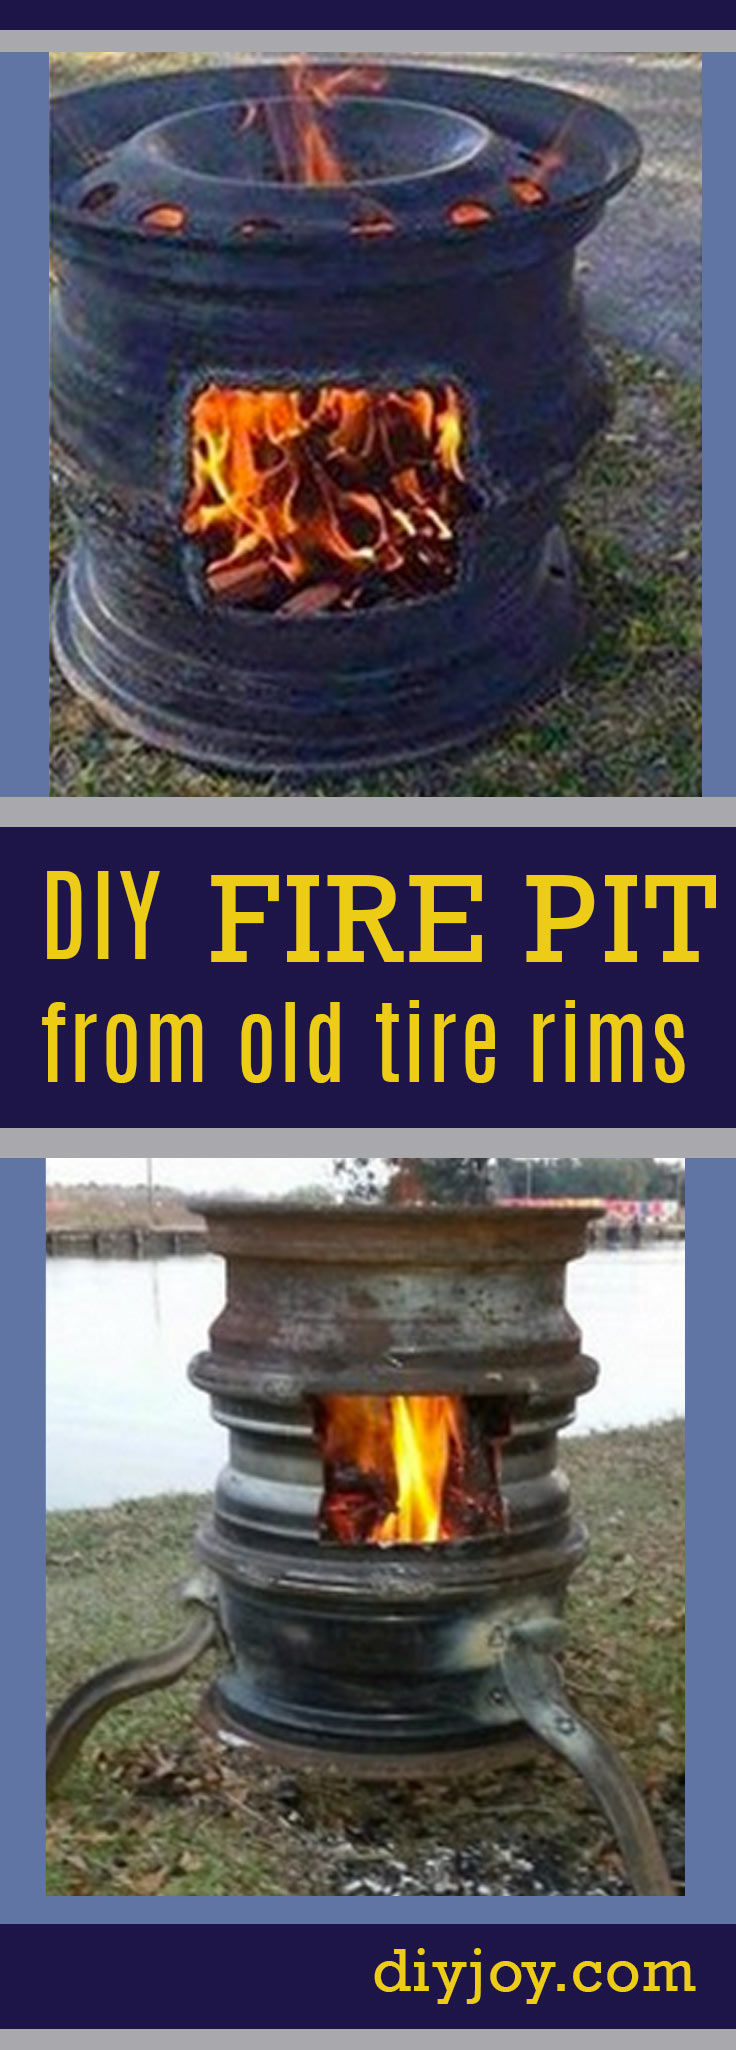 DIY Fire Pit from Old Tire Rims - Cheap DIY Fire pit made from car parts